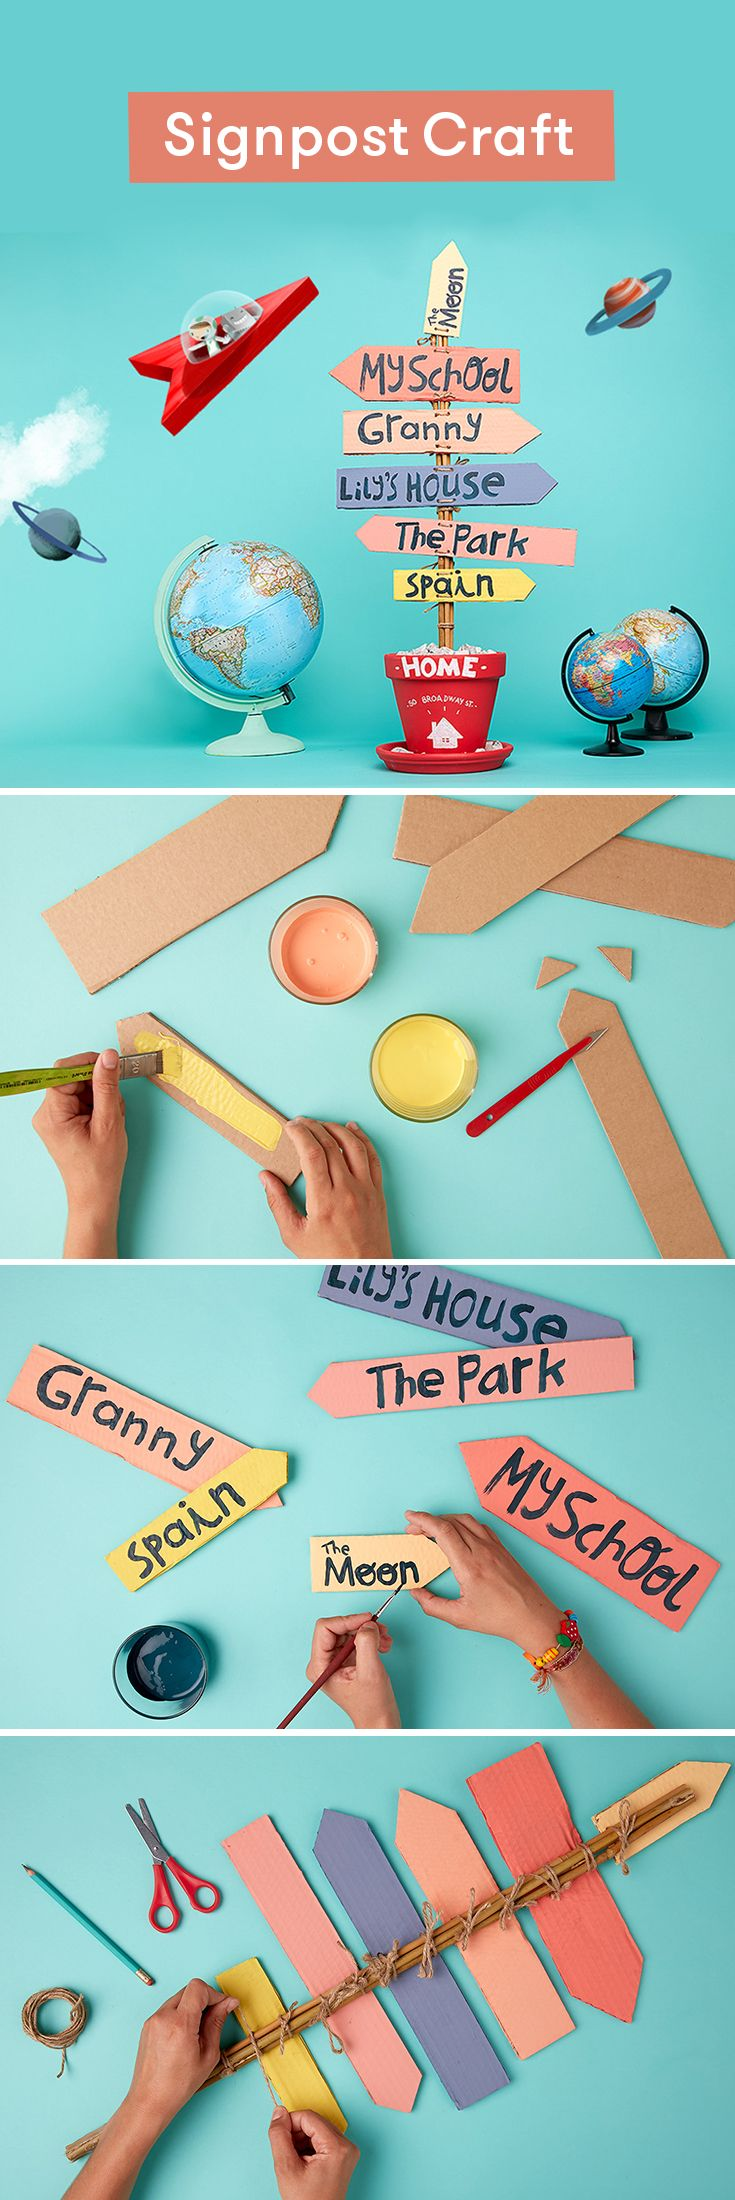 Make a signpost craft all about your kid's favourite places. While their world is always expanding, home remains its centre. This craft is a lovely keepsake to remind them how it relates to the other important locations in their lives. And as you're making it you can talk about what home means to them.